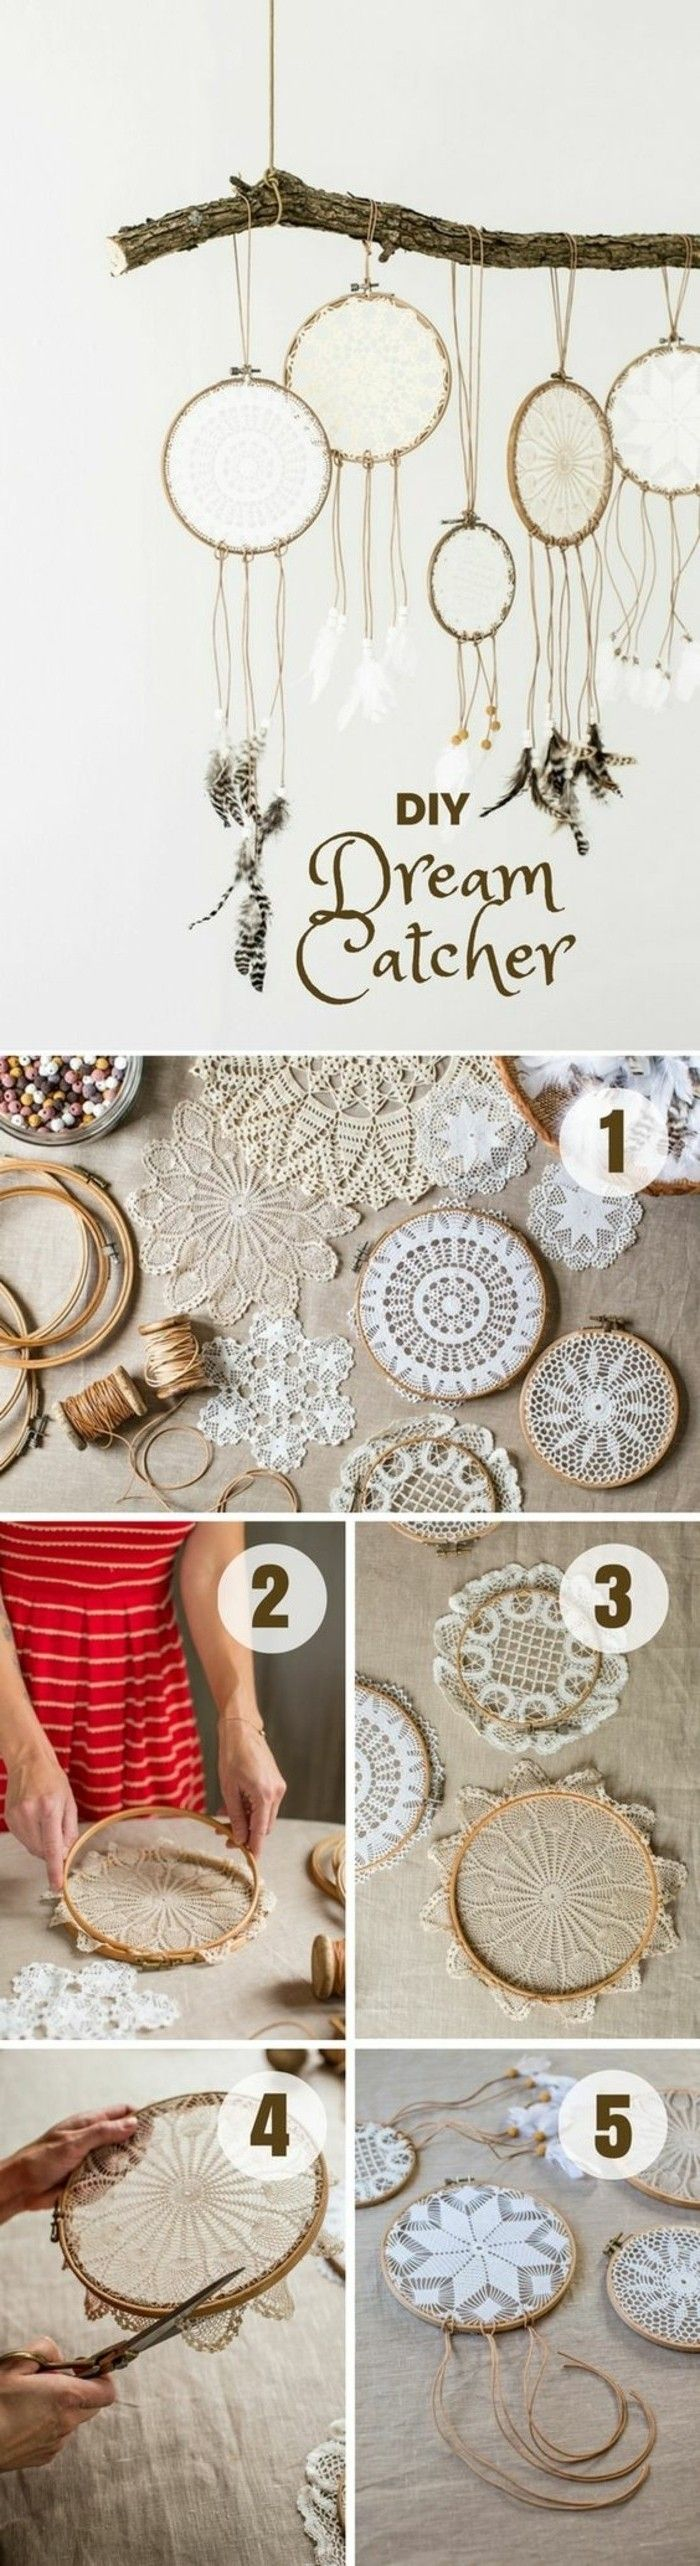 ▷1001 + Concepts for DIY Dreamcatcher Tutorials and 70 Beautiful Images